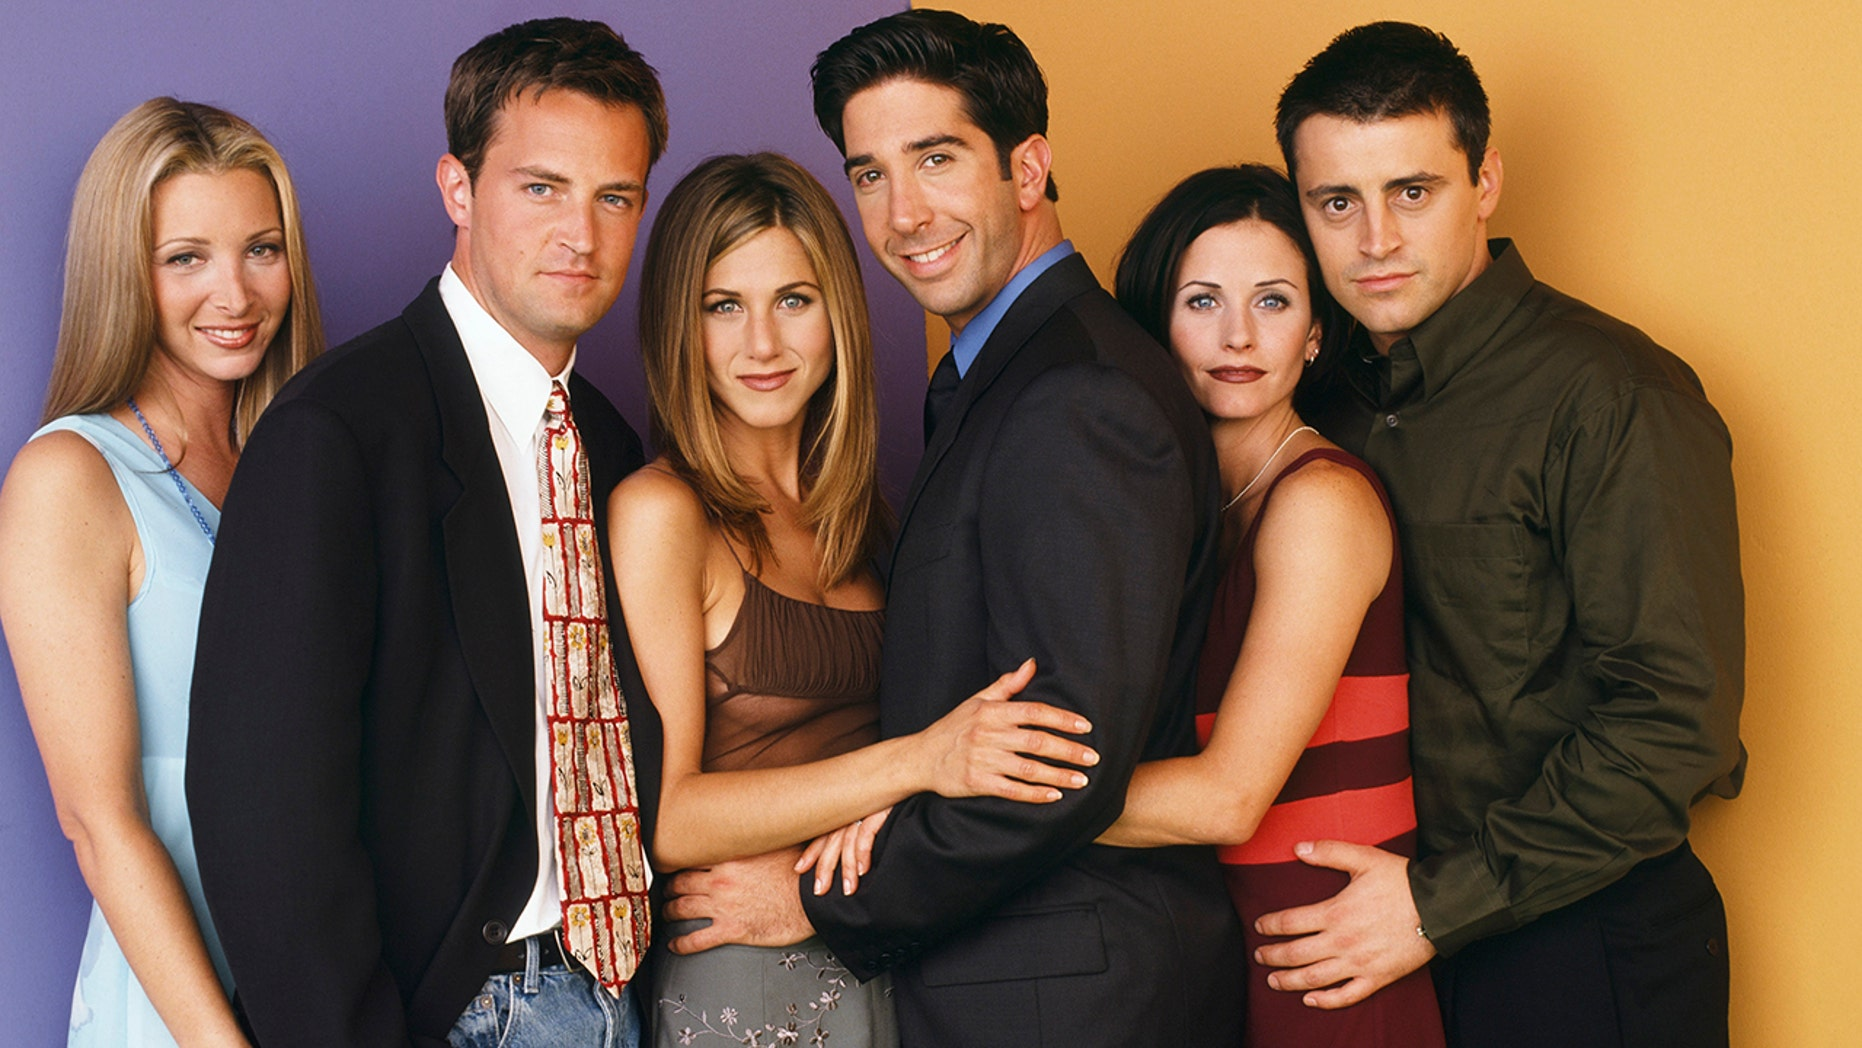 """Friends"" has been over for more than 15 years, but it appears it's still as popular as ever. Netflix agreed to pay $100 million to make it available to subscribers through 2019 following public outcry after news broke it was pulling it off."